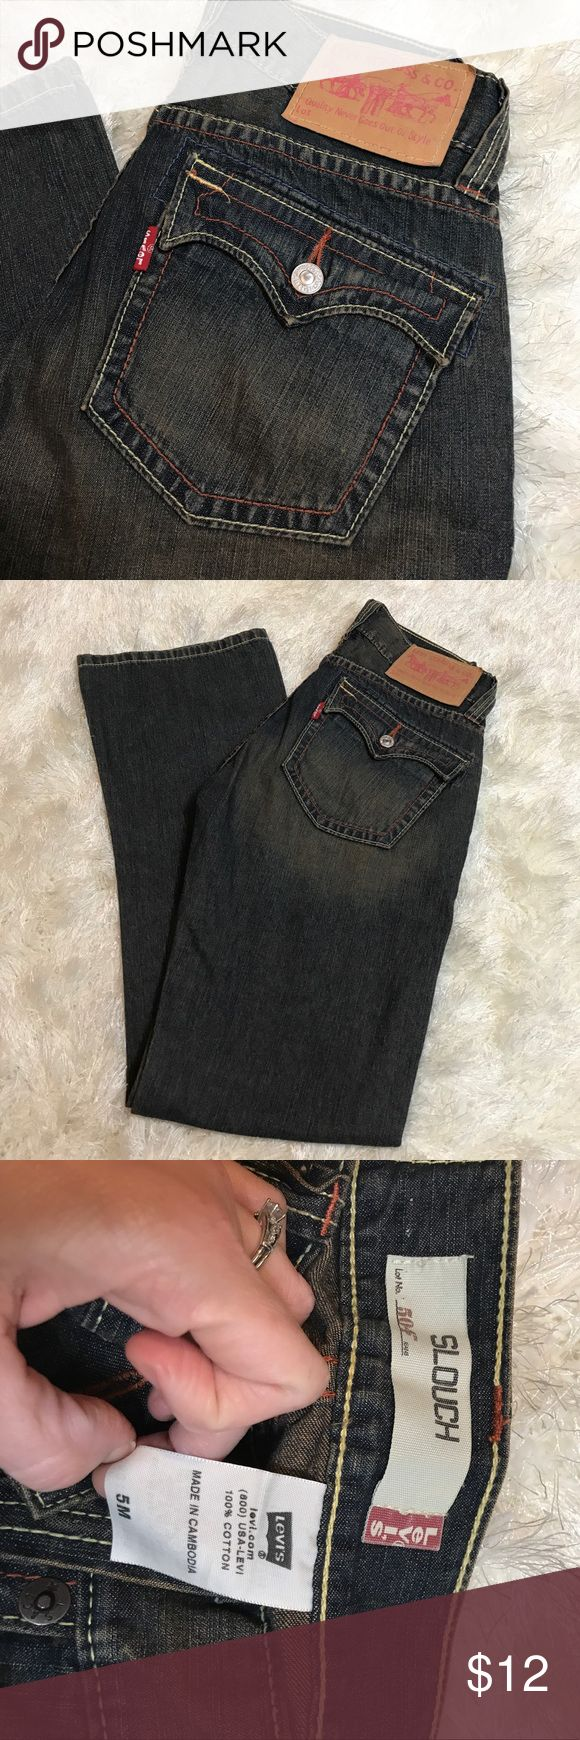 """Levi's dingy slouch jeans sz 5 These jeans have the """"dingy"""" look- with stitching in blues and yellows and rust colors. Super cute detailing- these also have the curved stitching at the bottom. Waist flat 15 inches. Front rise 7.5 inches. Inseam 32 inches. No rips or stains. Bundling is fun; check out my other items! No price talk in comments. No trades or holds. NO SPAM. Levi's Jeans Boot Cut"""